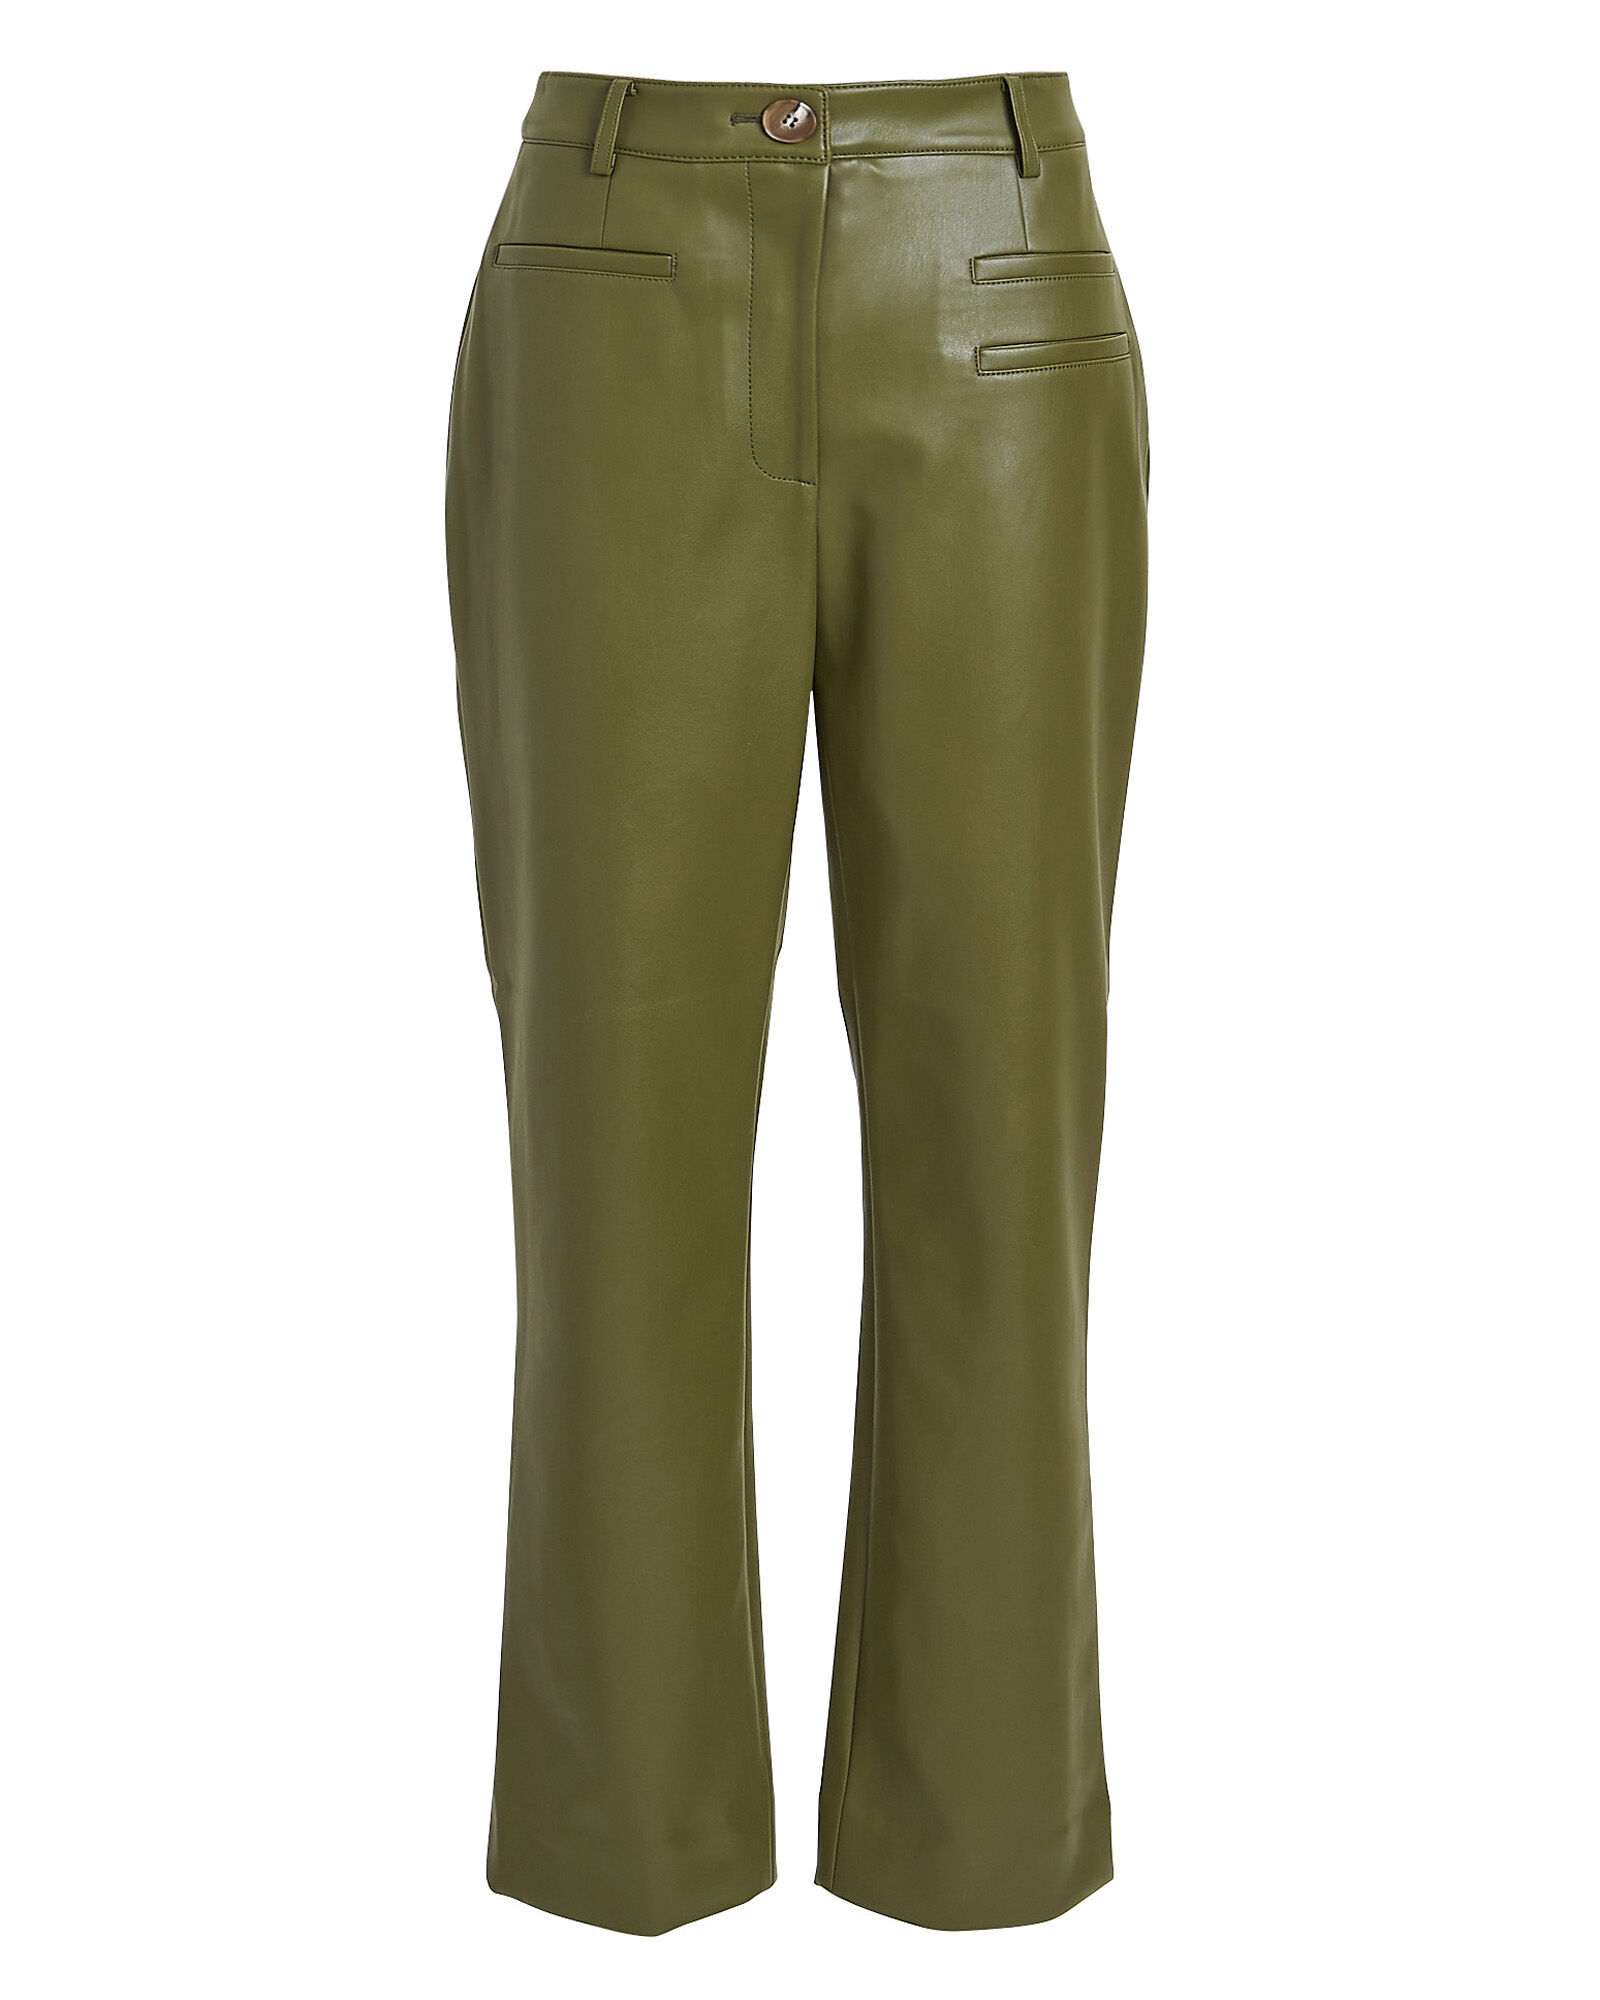 Finley Faux Leather Cropped Trousers, OLIVE/ARMY, hi-res